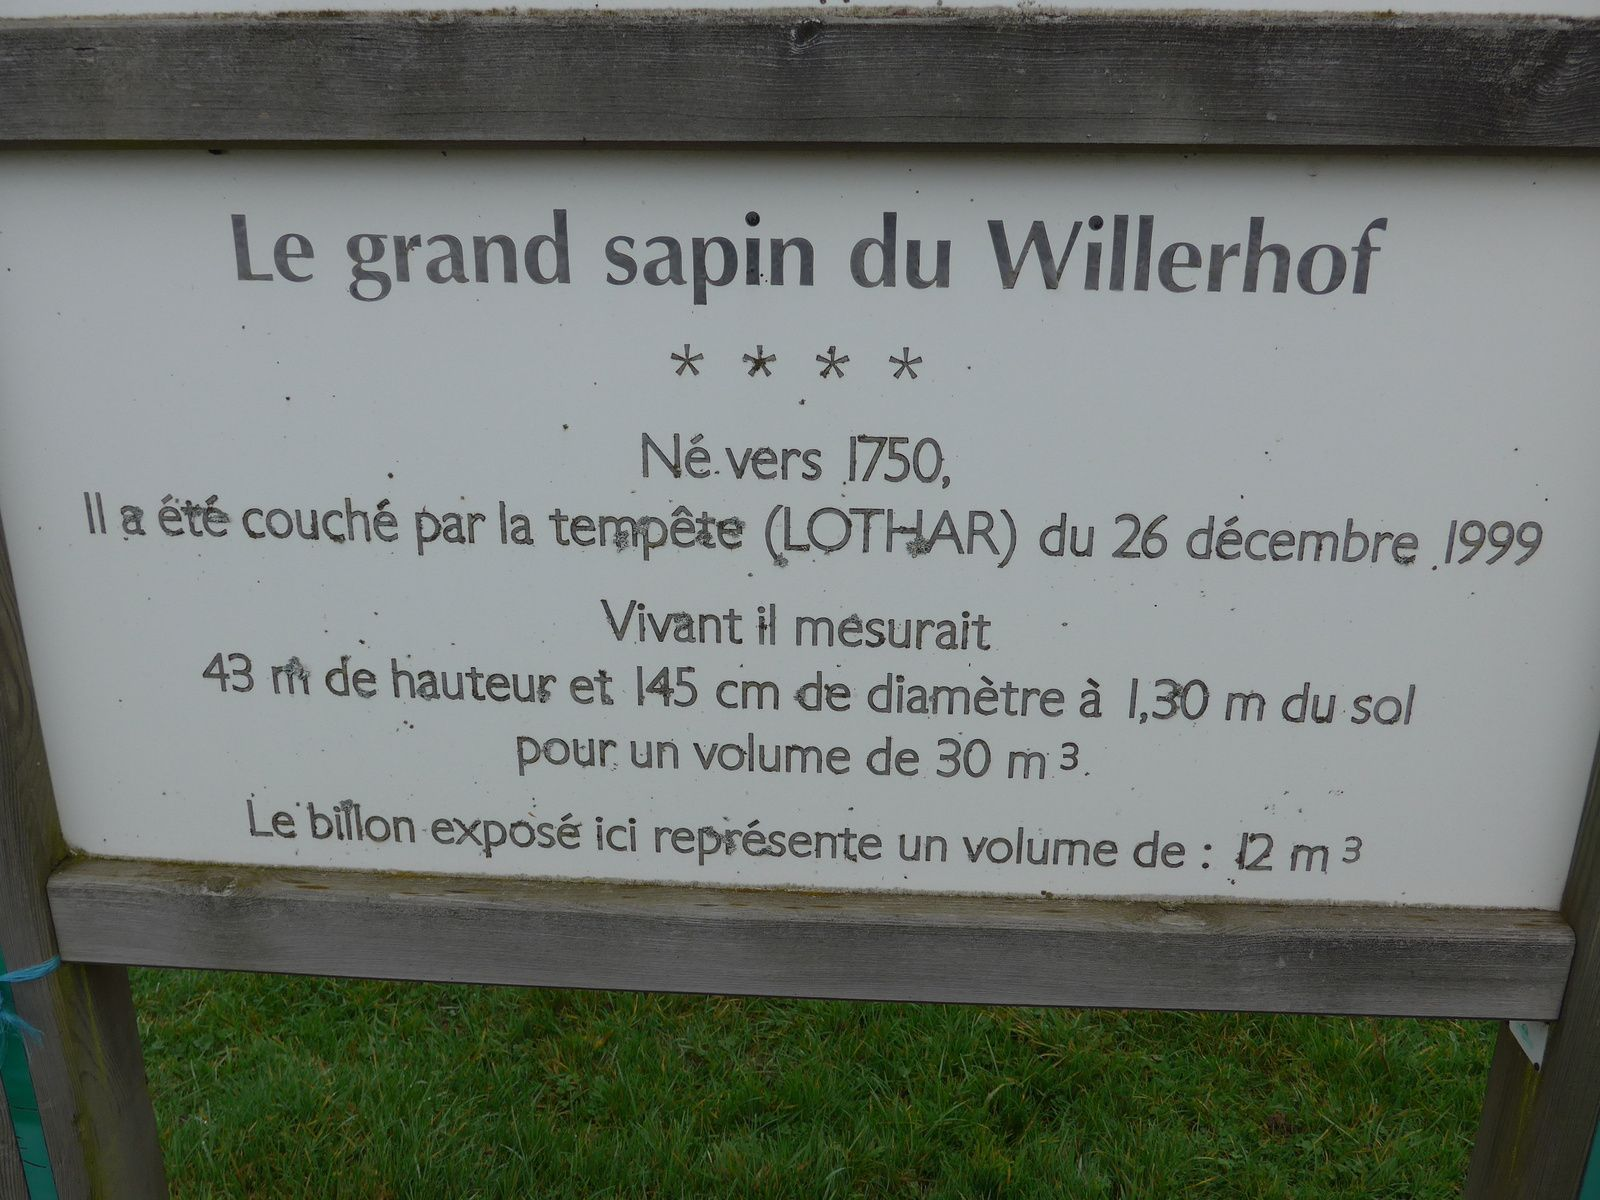 Le grand sapin du Willerhof